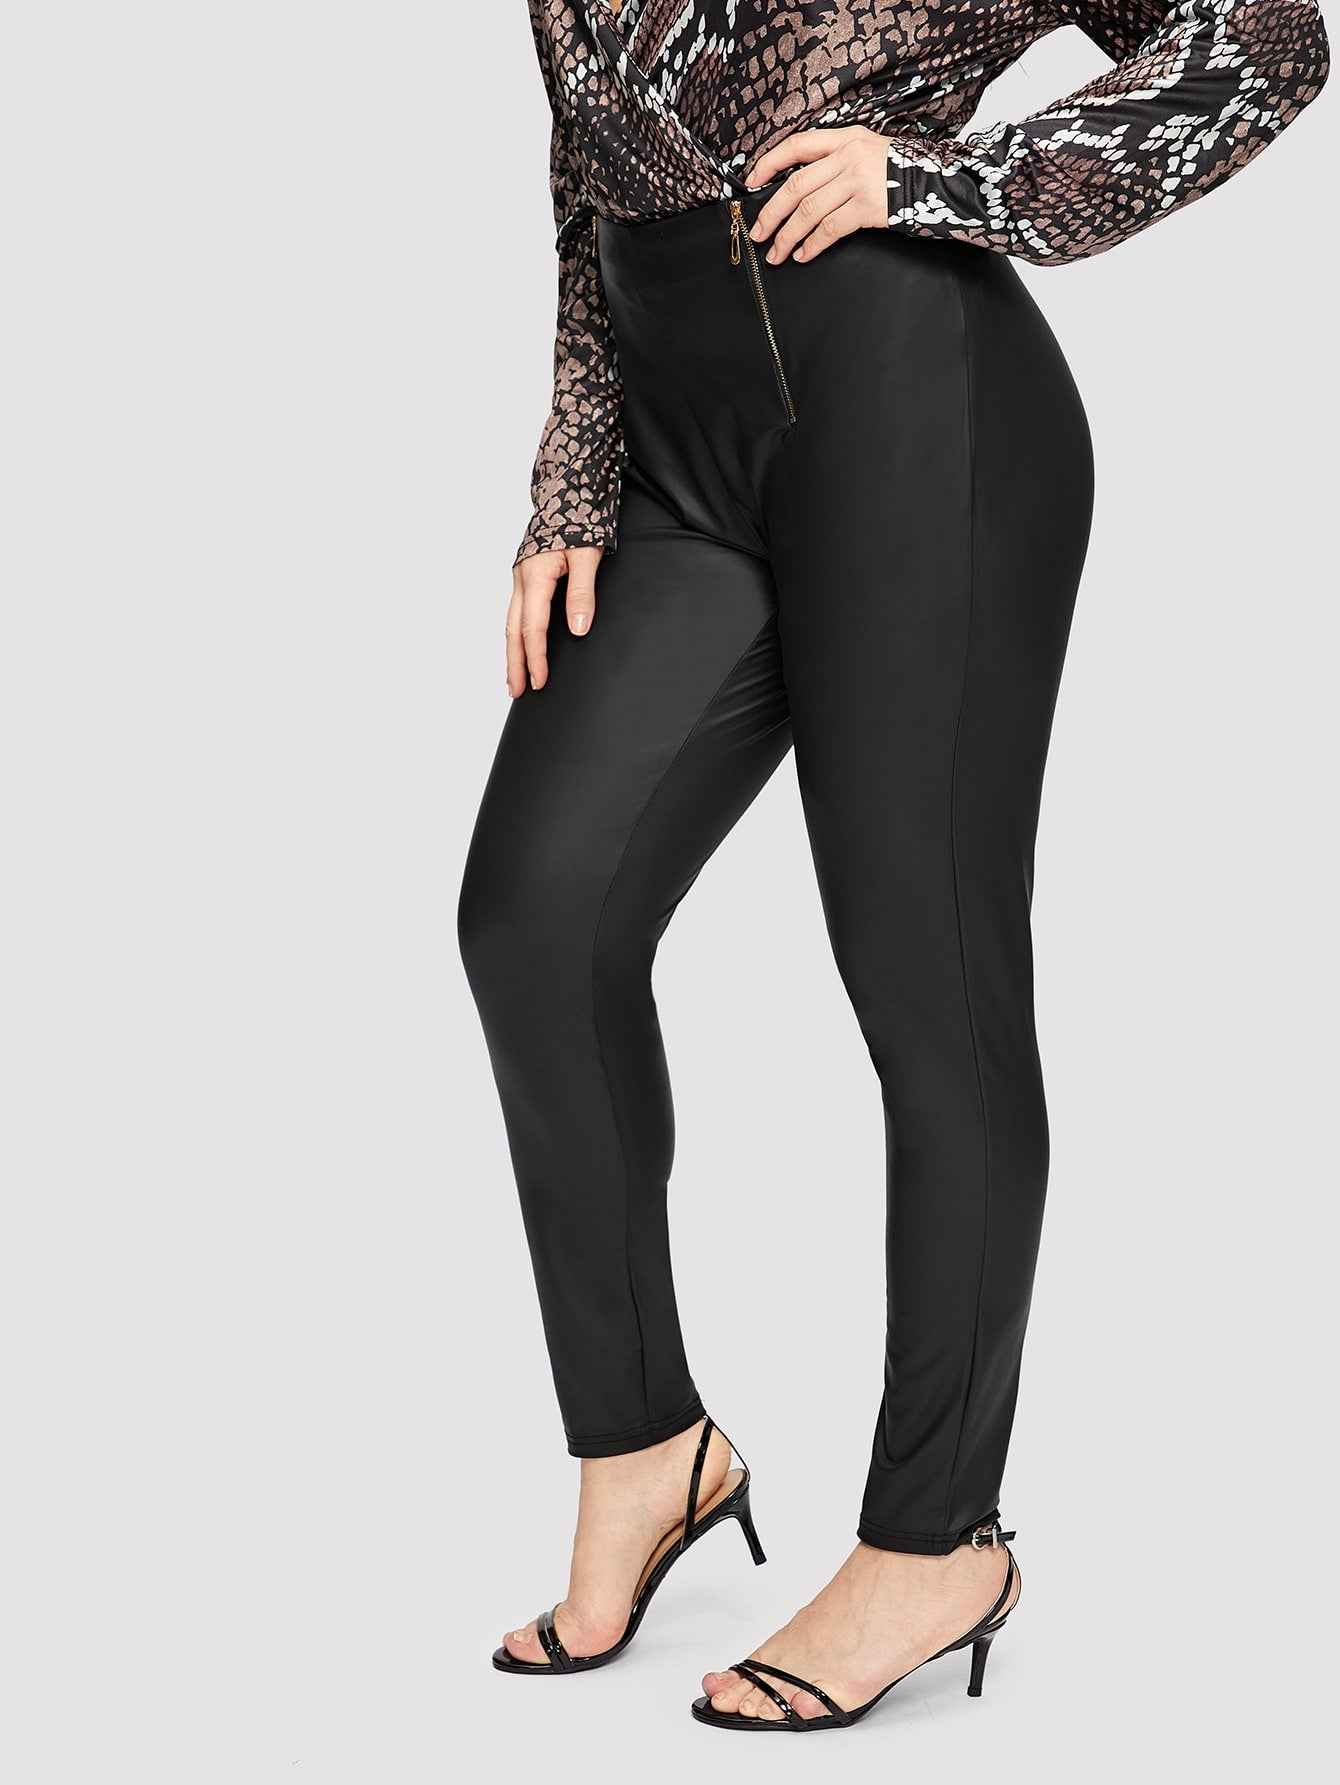 Plus Size Dress Pants - Exposed Zipper Detail Skinny Pants